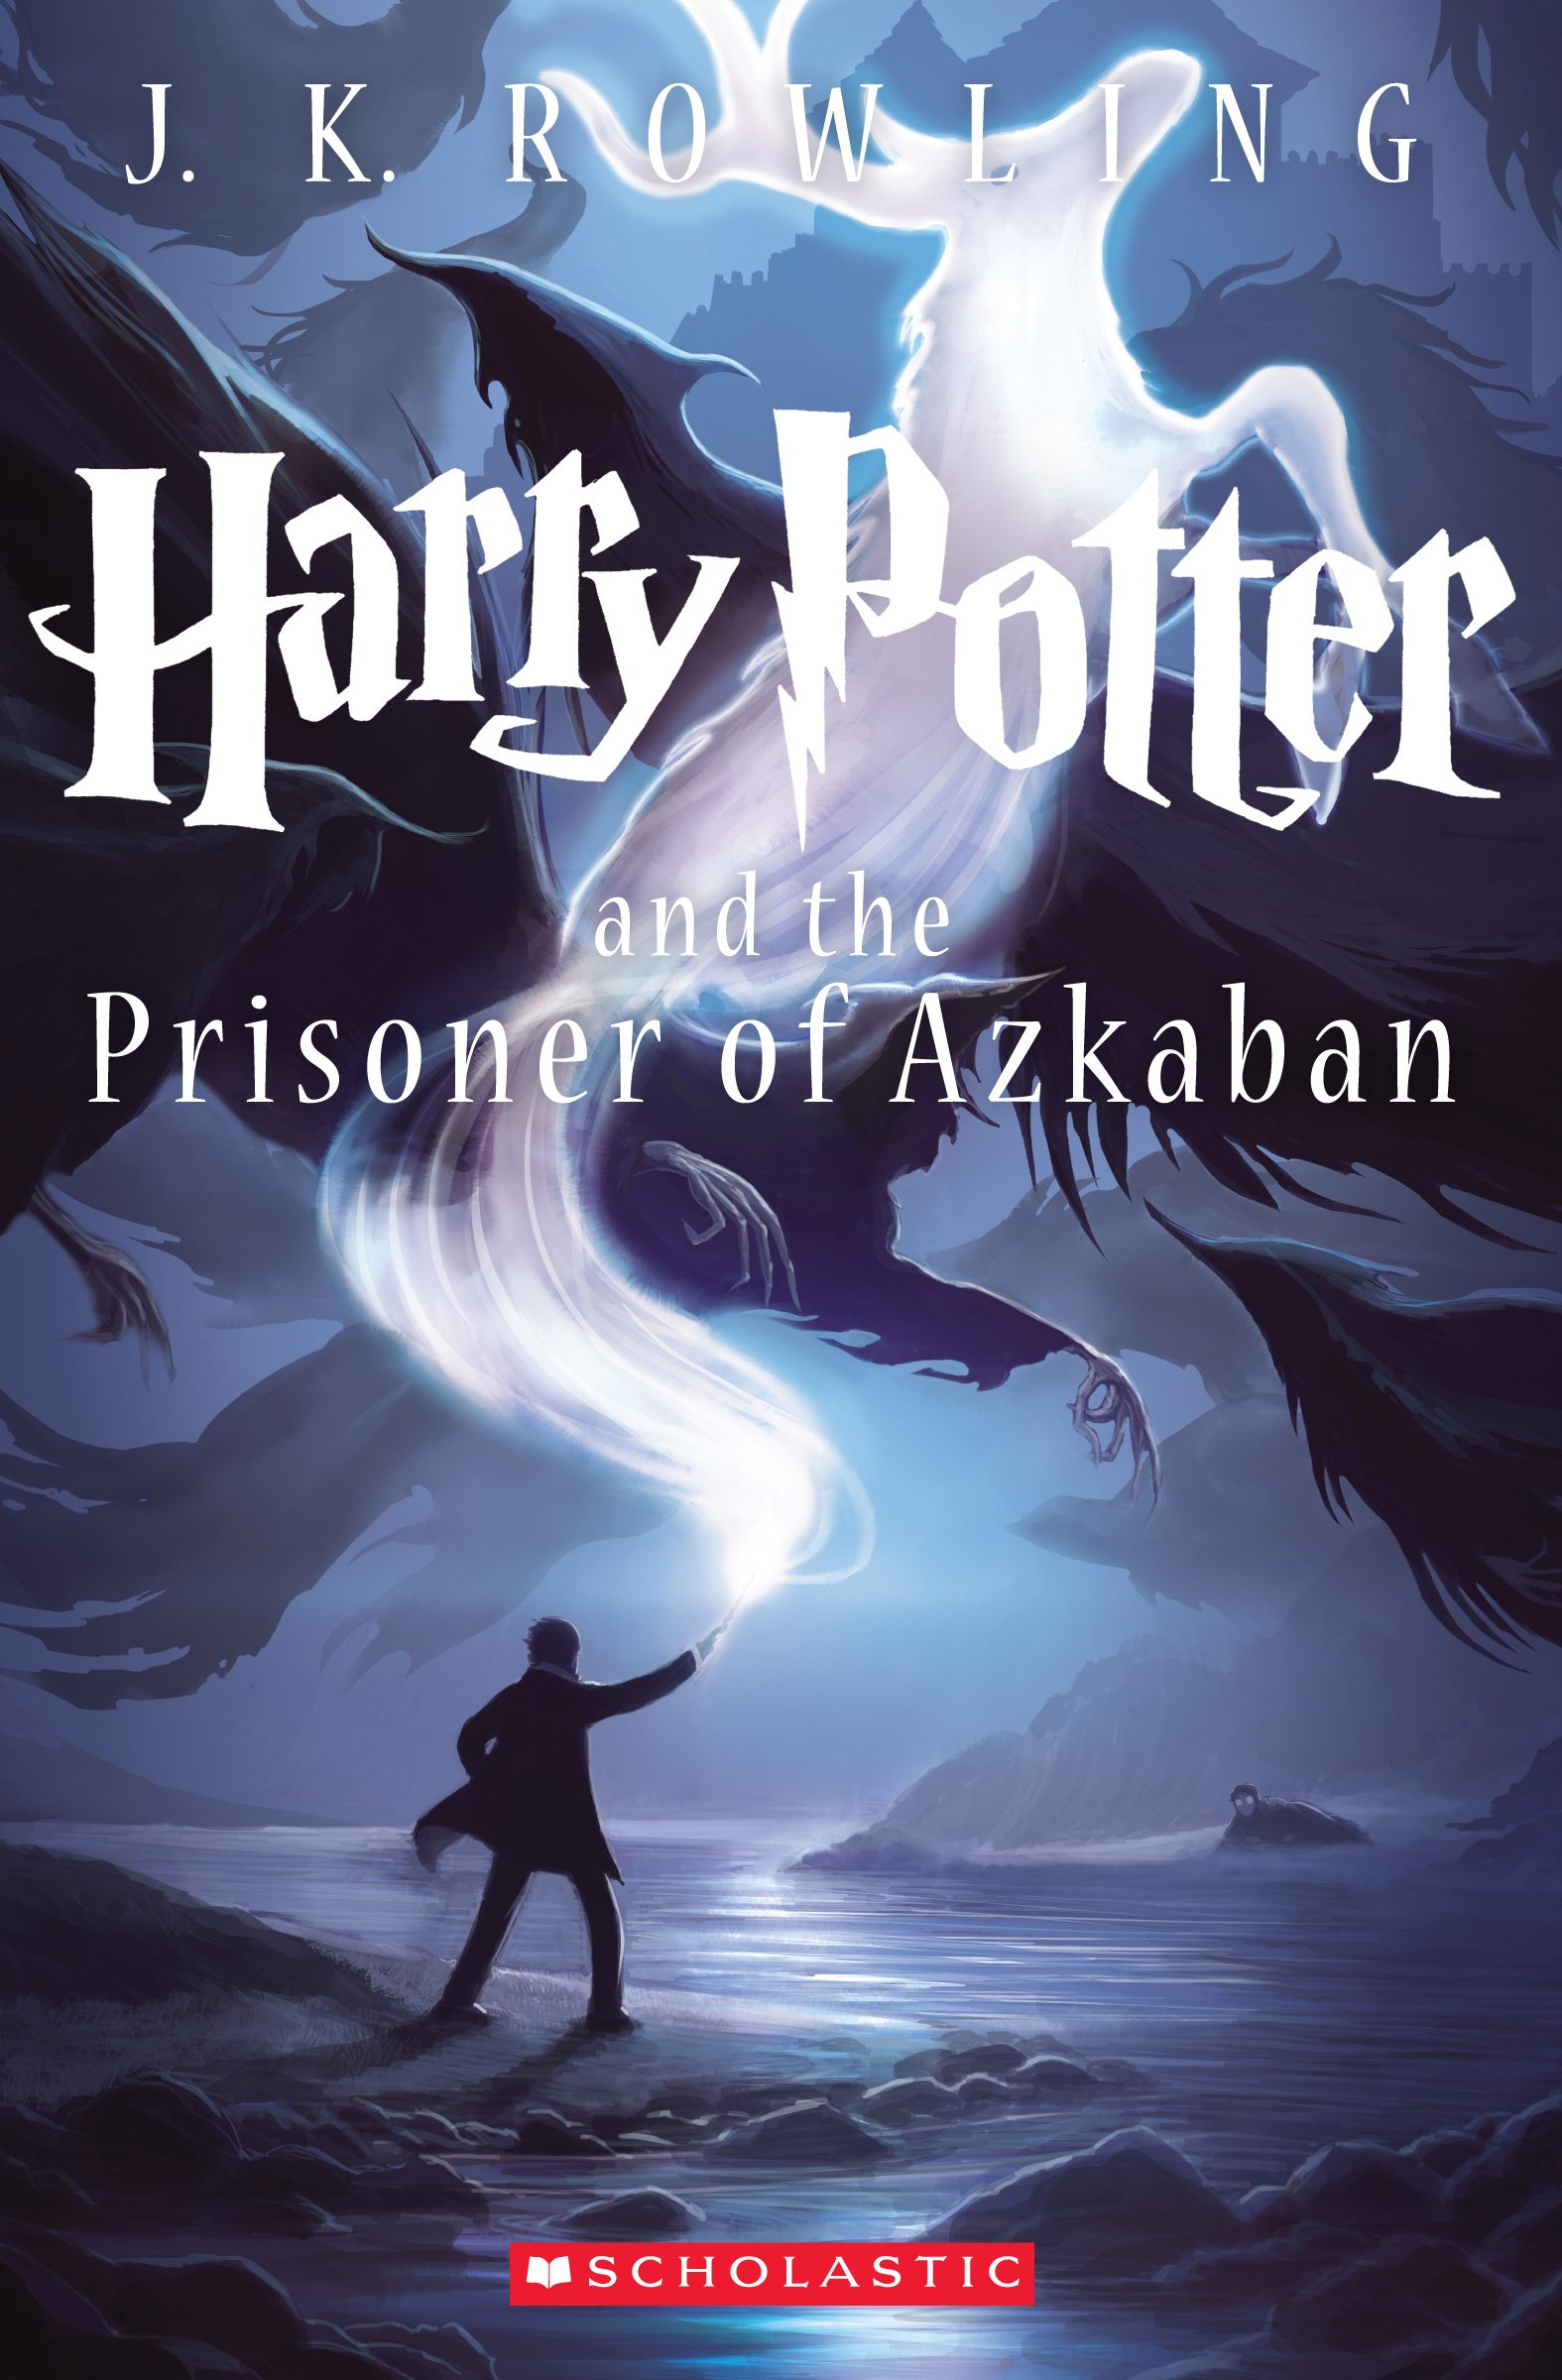 Harry Potter Book Cover Creator : Final harry potter cover reveal today at scholastic store